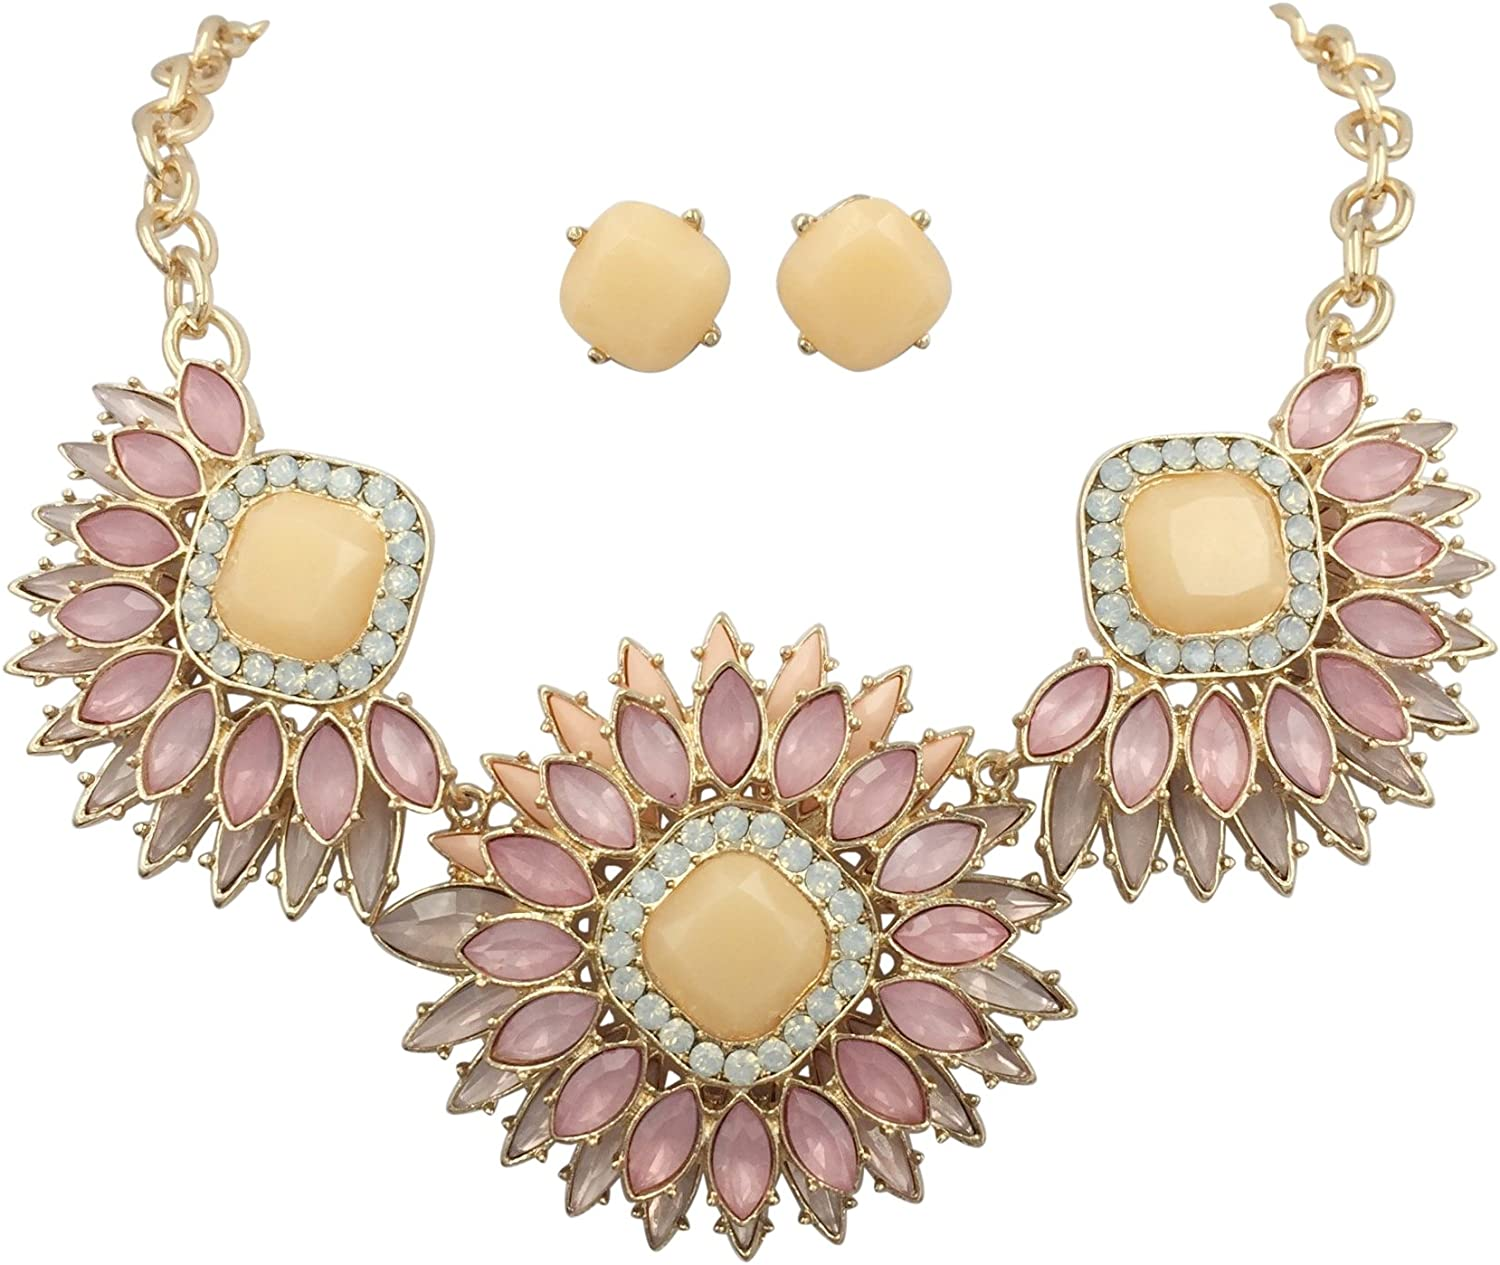 Gypsy Jewels Large Abstract Bib Statement Boutique Necklace & Earrings Set -Assorted Colors